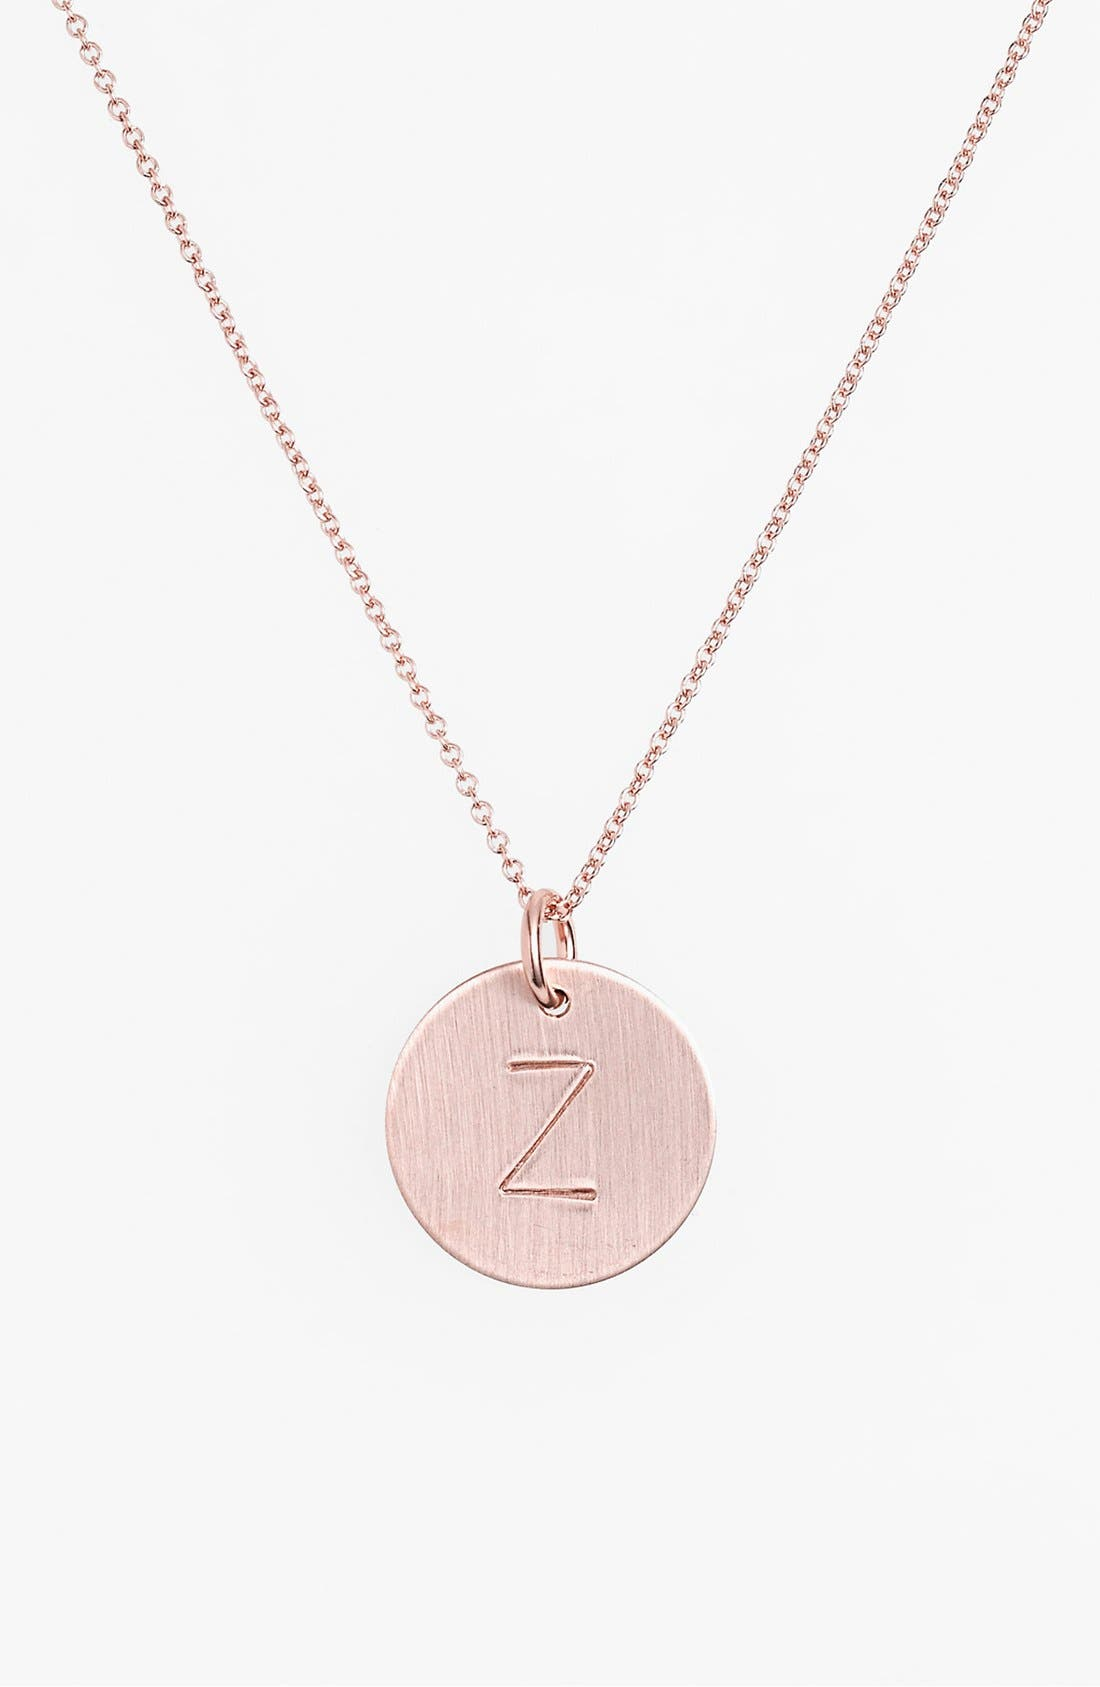 14k-Rose Gold Fill Initial Disc Necklace,                             Main thumbnail 26, color,